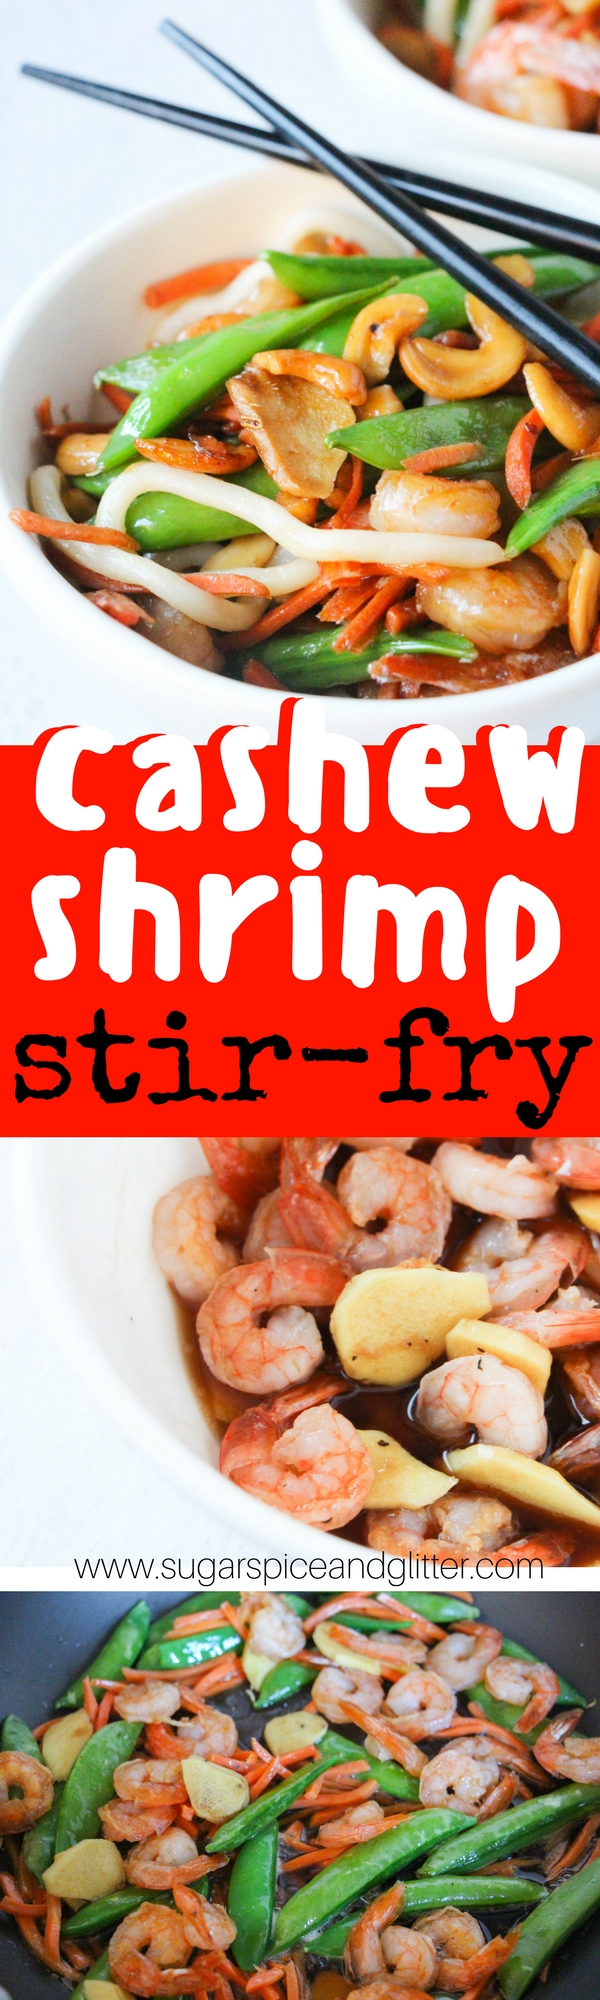 A delicious cashew shrimp stir-fry that costs less and tastes better than any take-out version! A copycat Asian recipe that your family will love